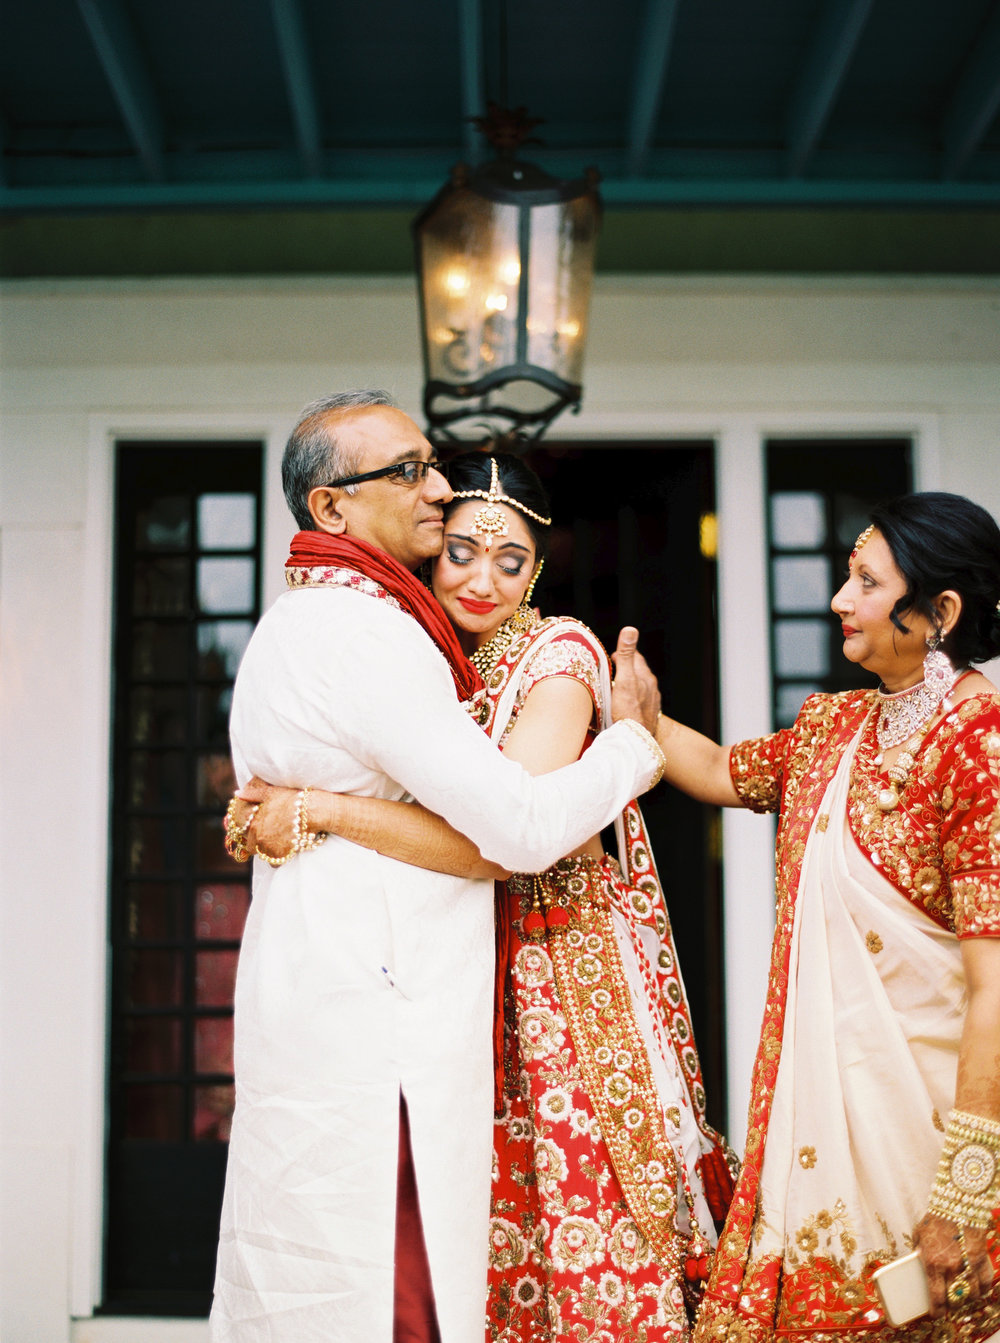 RonakHeenaWedding_Selects-11.jpg